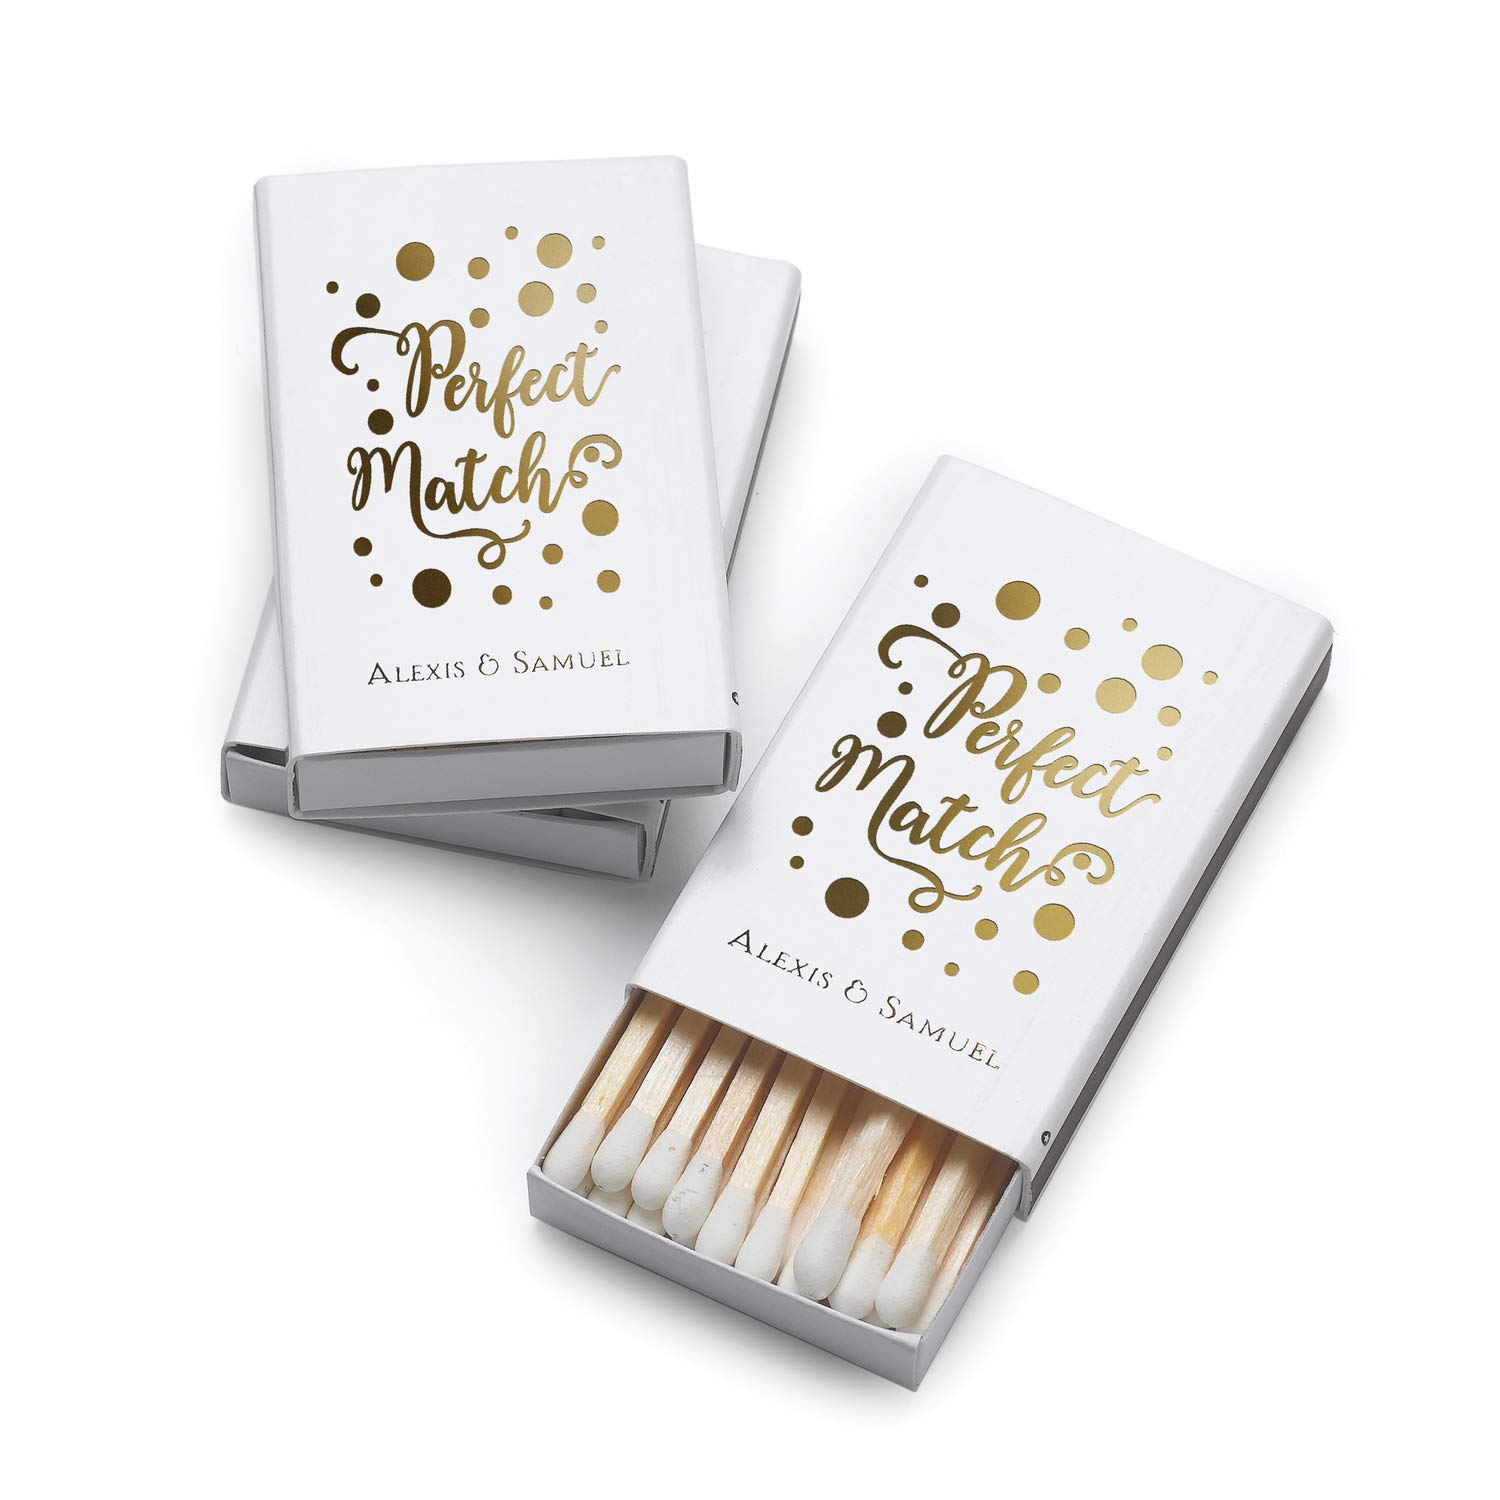 300pk Perfect Match - Box Matches-Favors by Carlson Craft (Image #1)